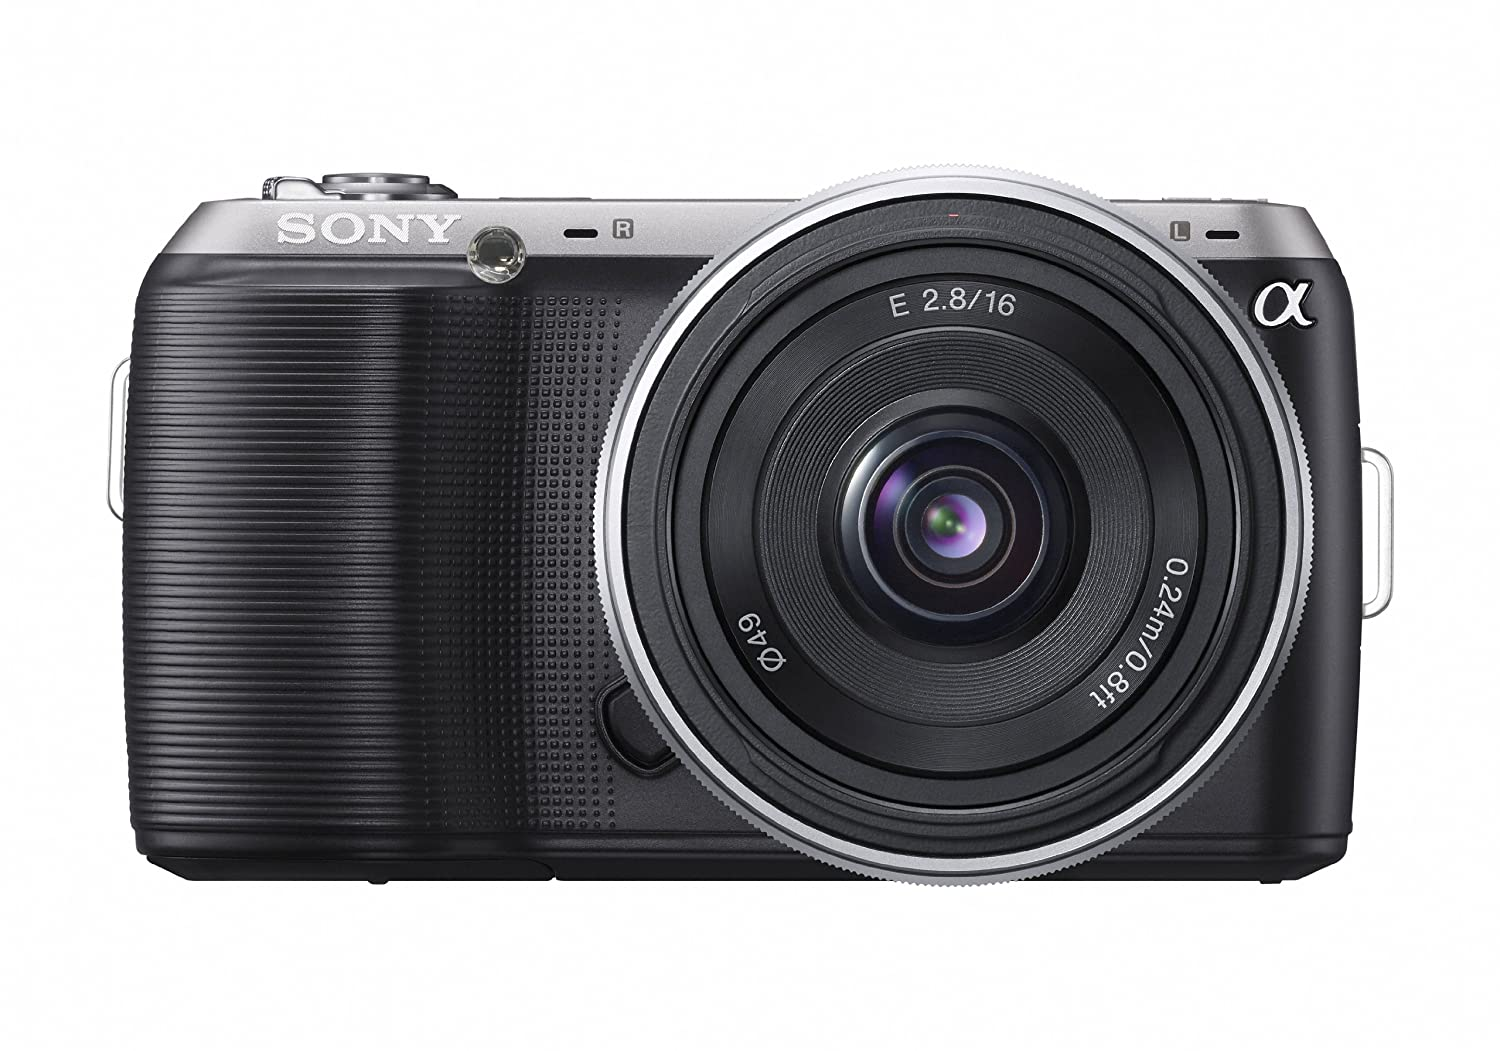 Mirrorless camera Sony Alpha NEX-C3 16 MP Compact Interchangeable Lens Digital Camera Kit with 18-55mm Zoom Lens (Black) was super-easy and very simple to operate